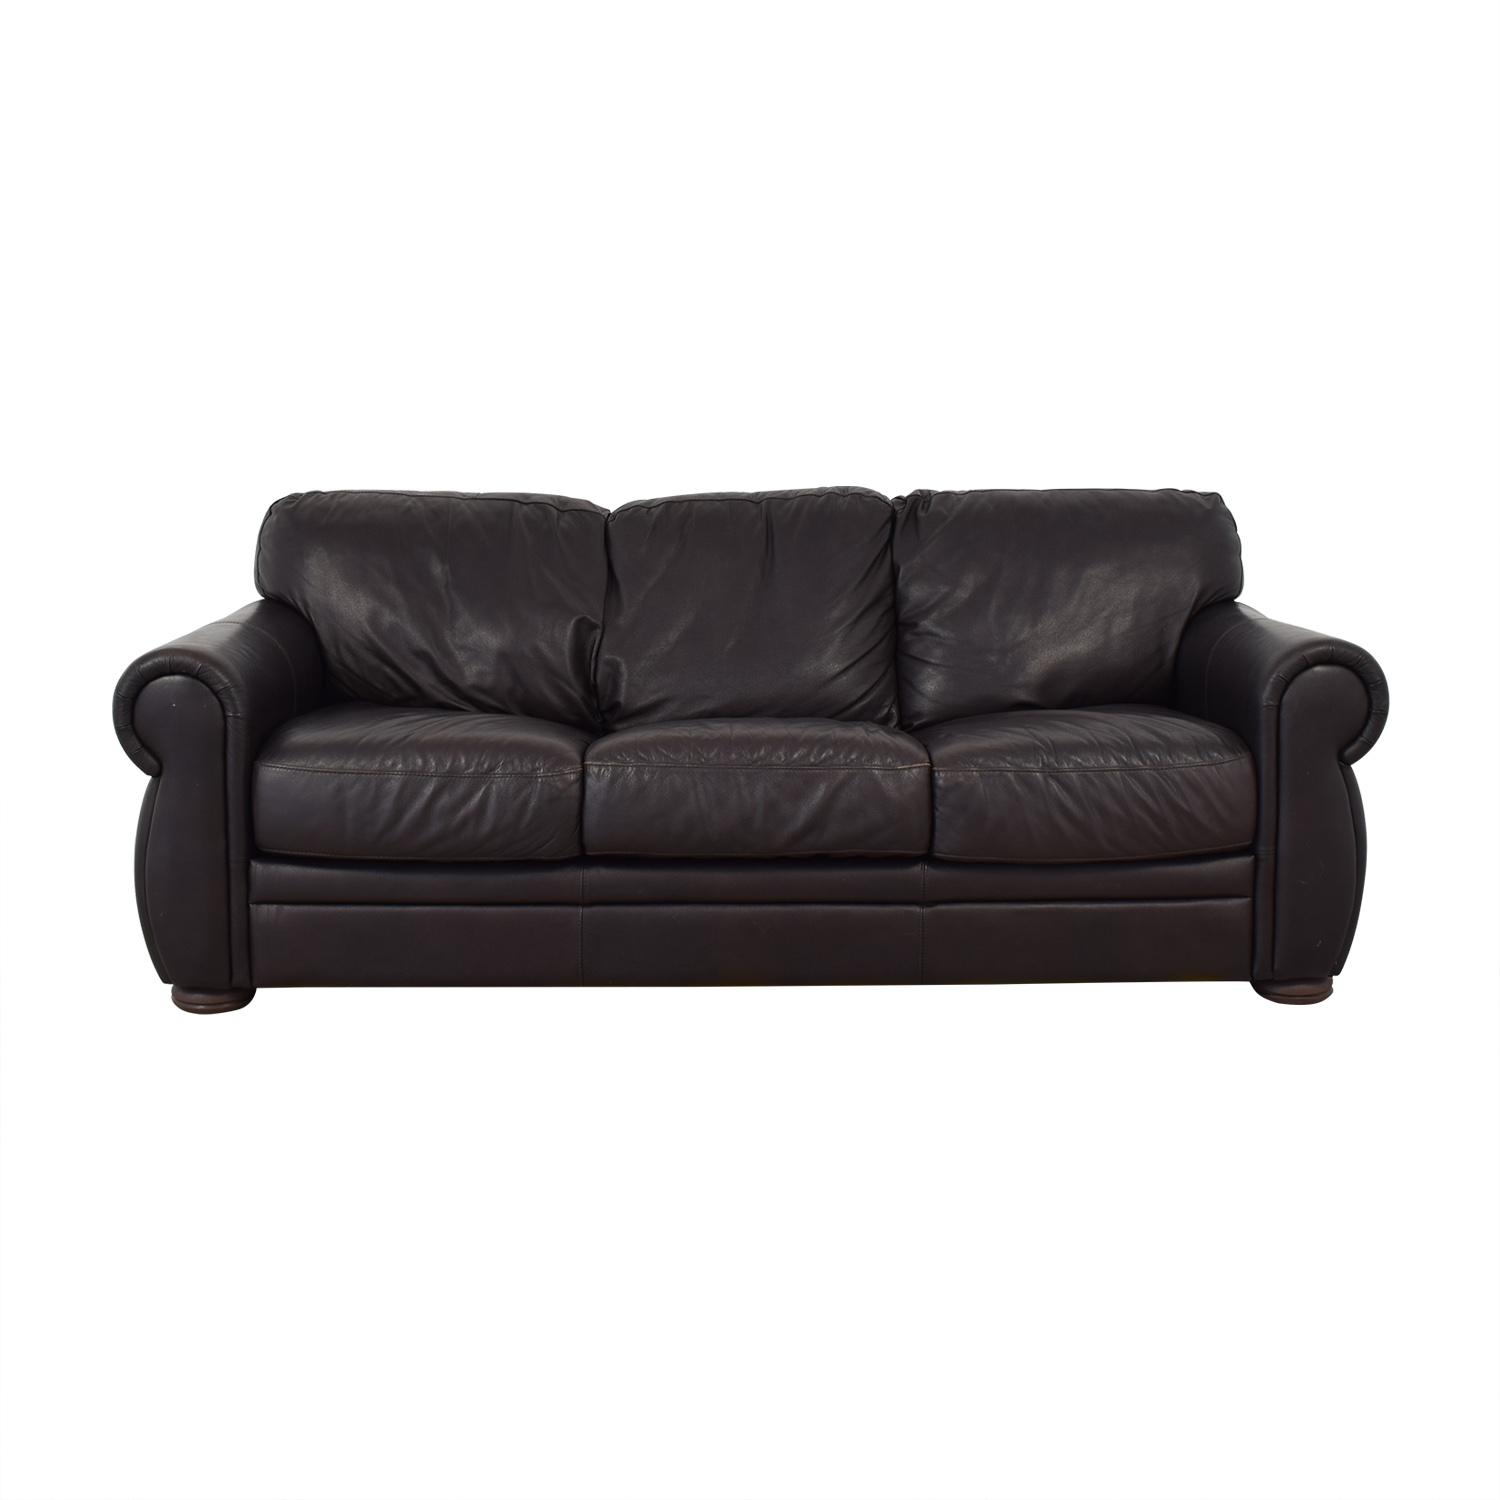 Raymour & Flanigan Raymour & Flanigan Leather Sleeper Sofa dimensions